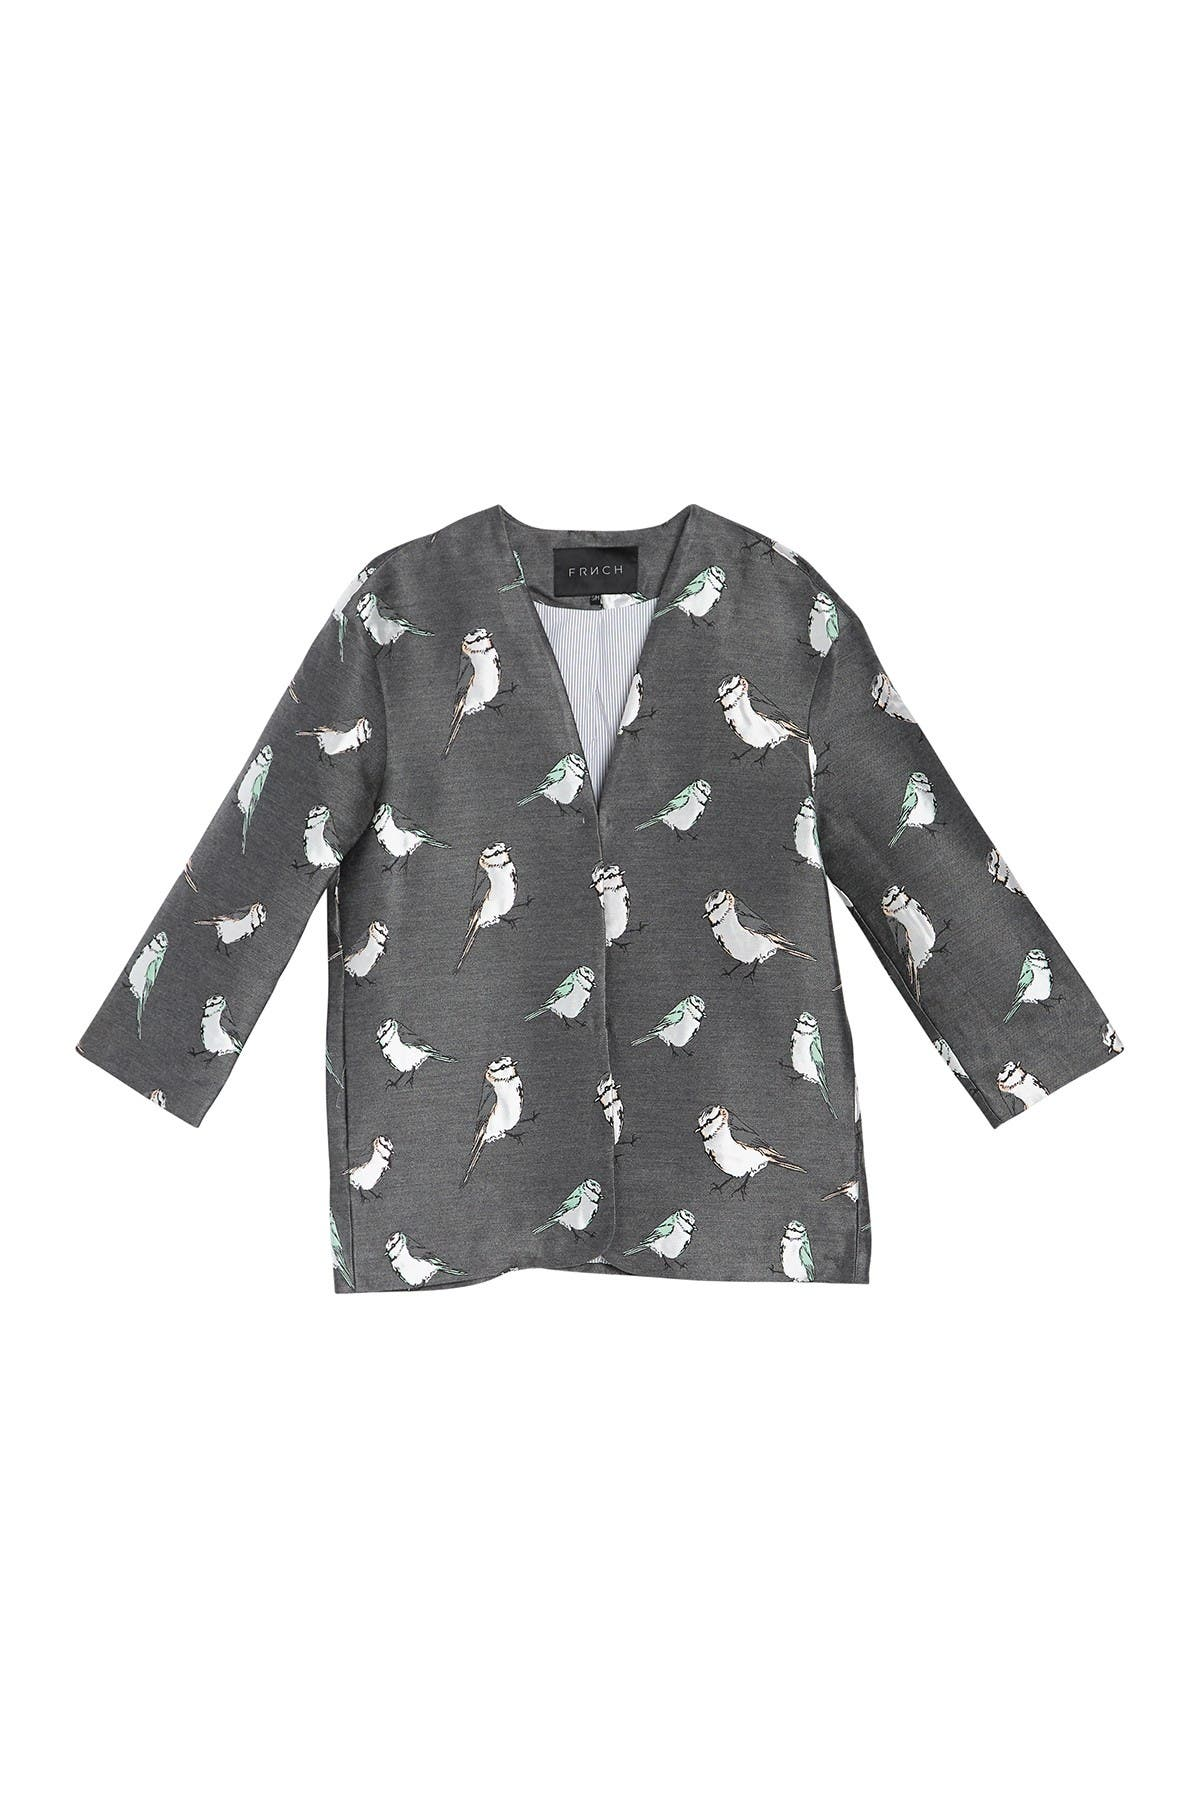 Image of FRNCH Bird Printed Jacket